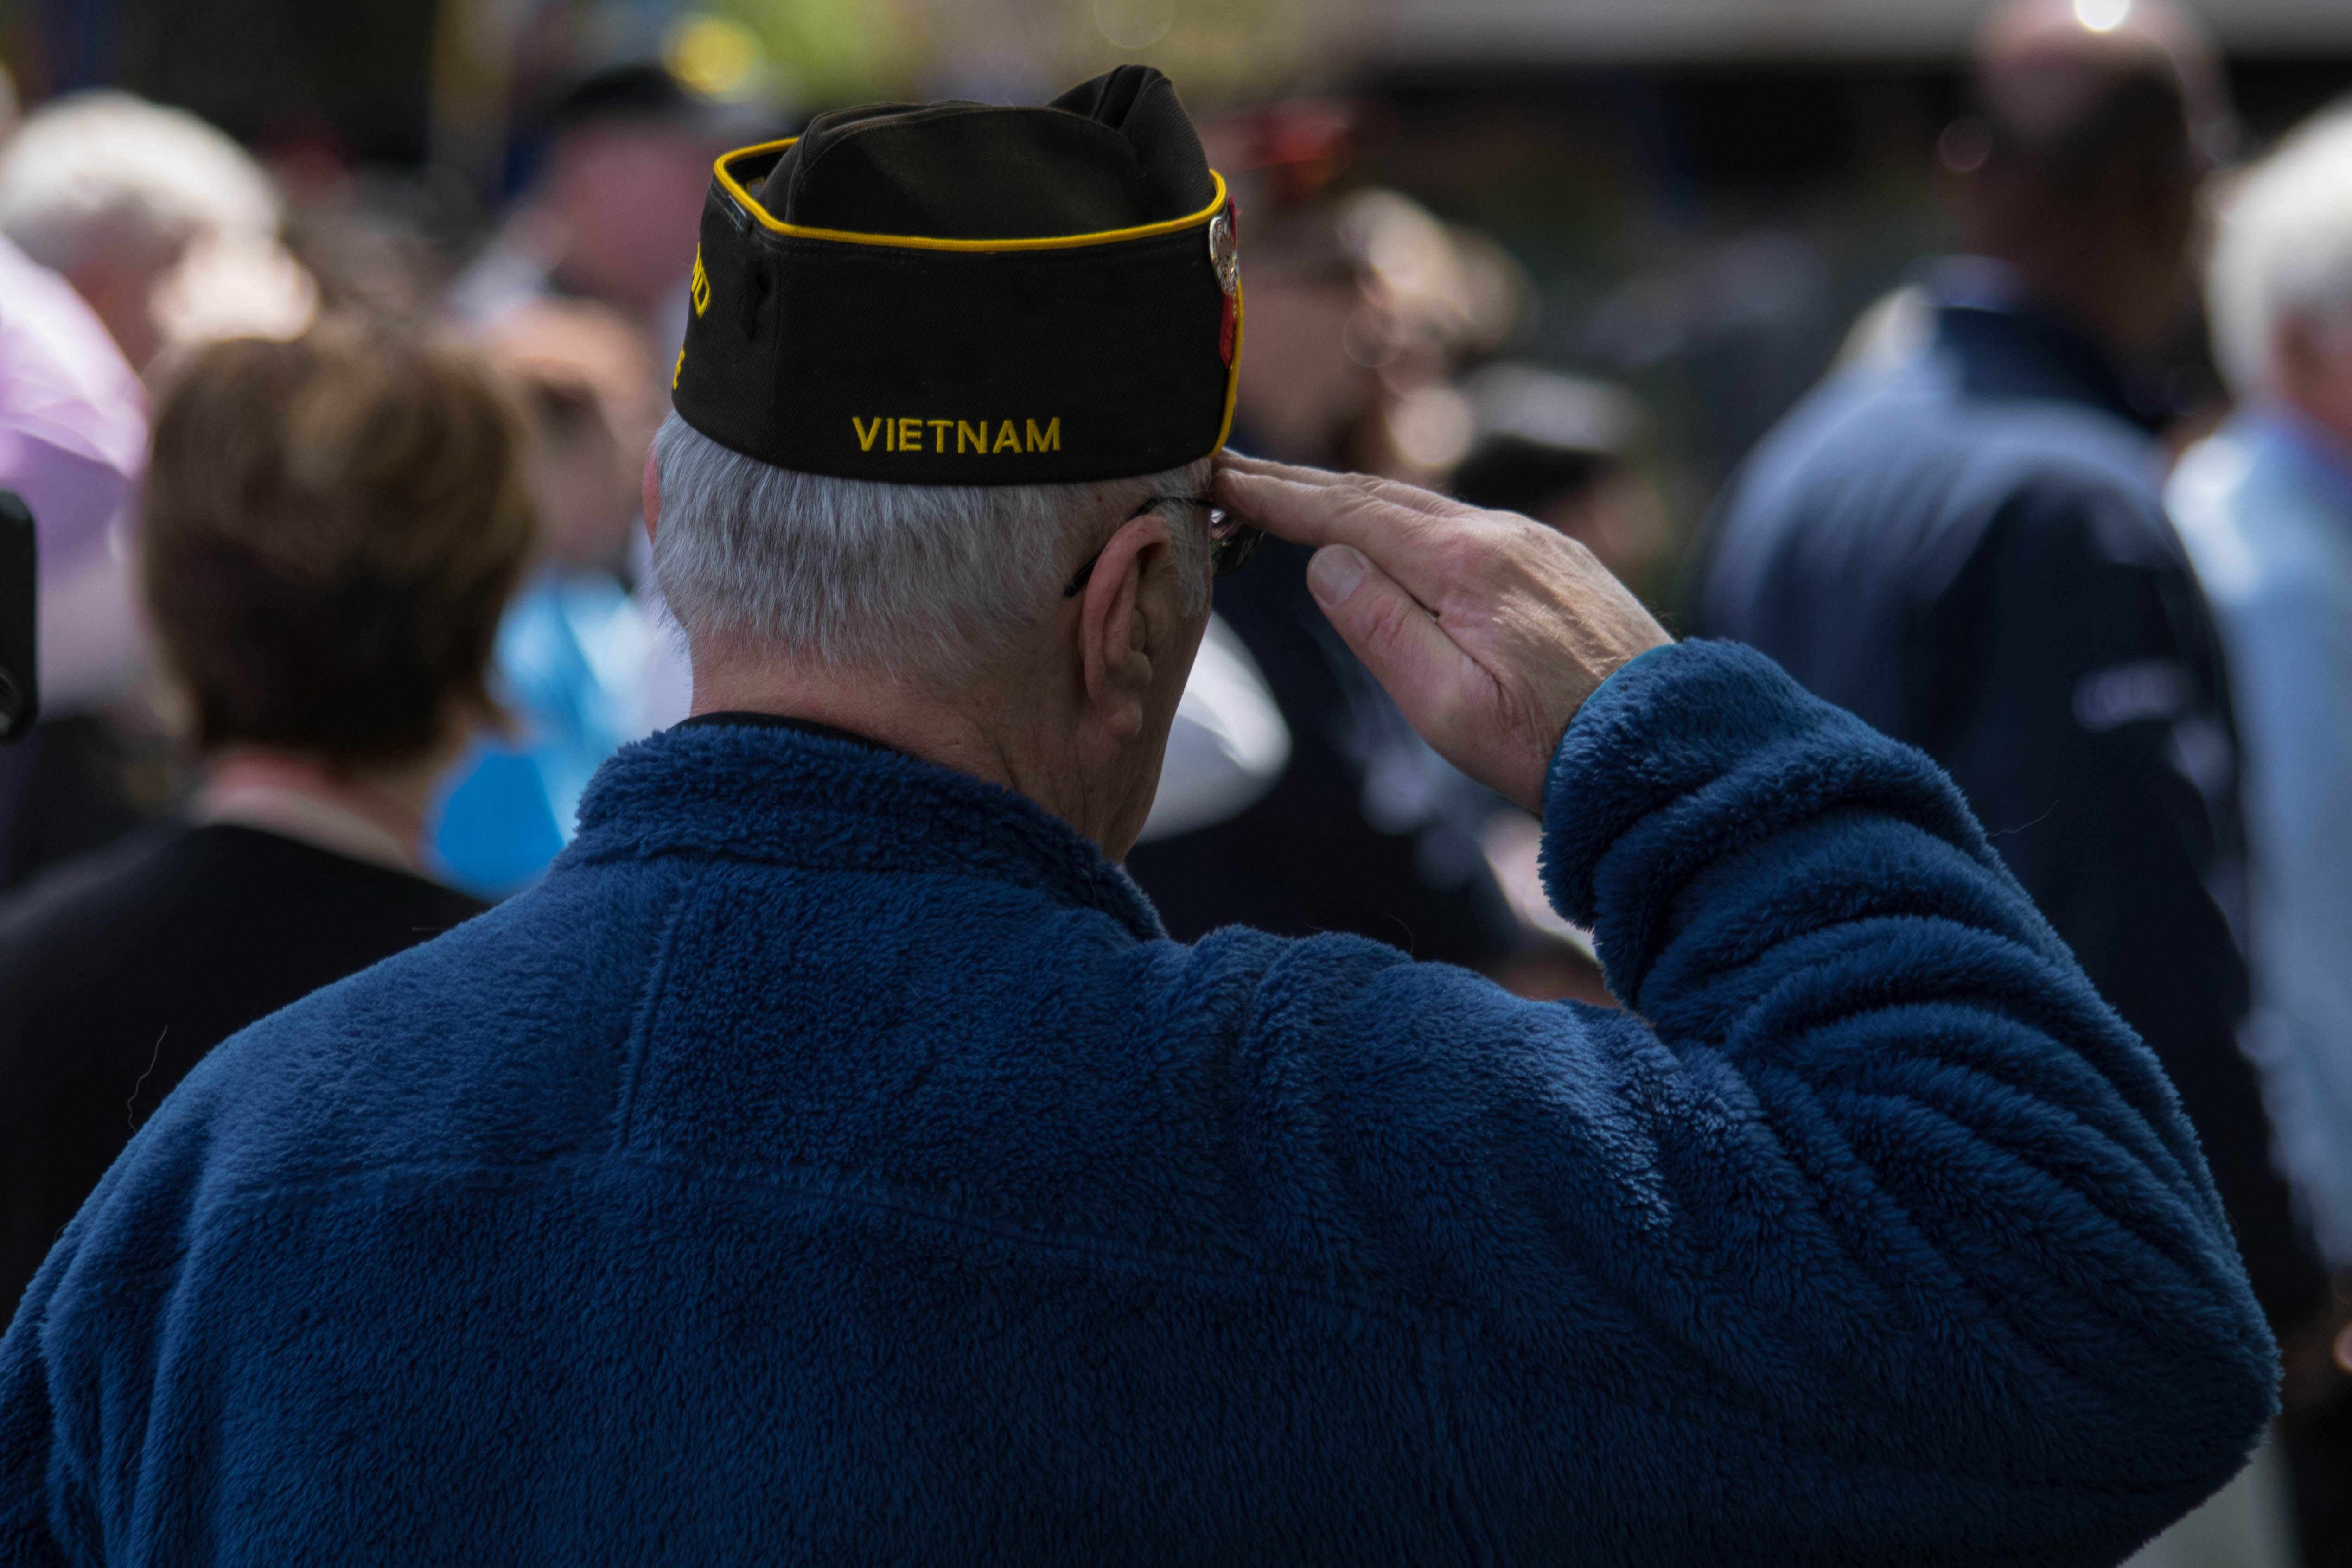 HeroCare Connect is proud to serve those who have served our country